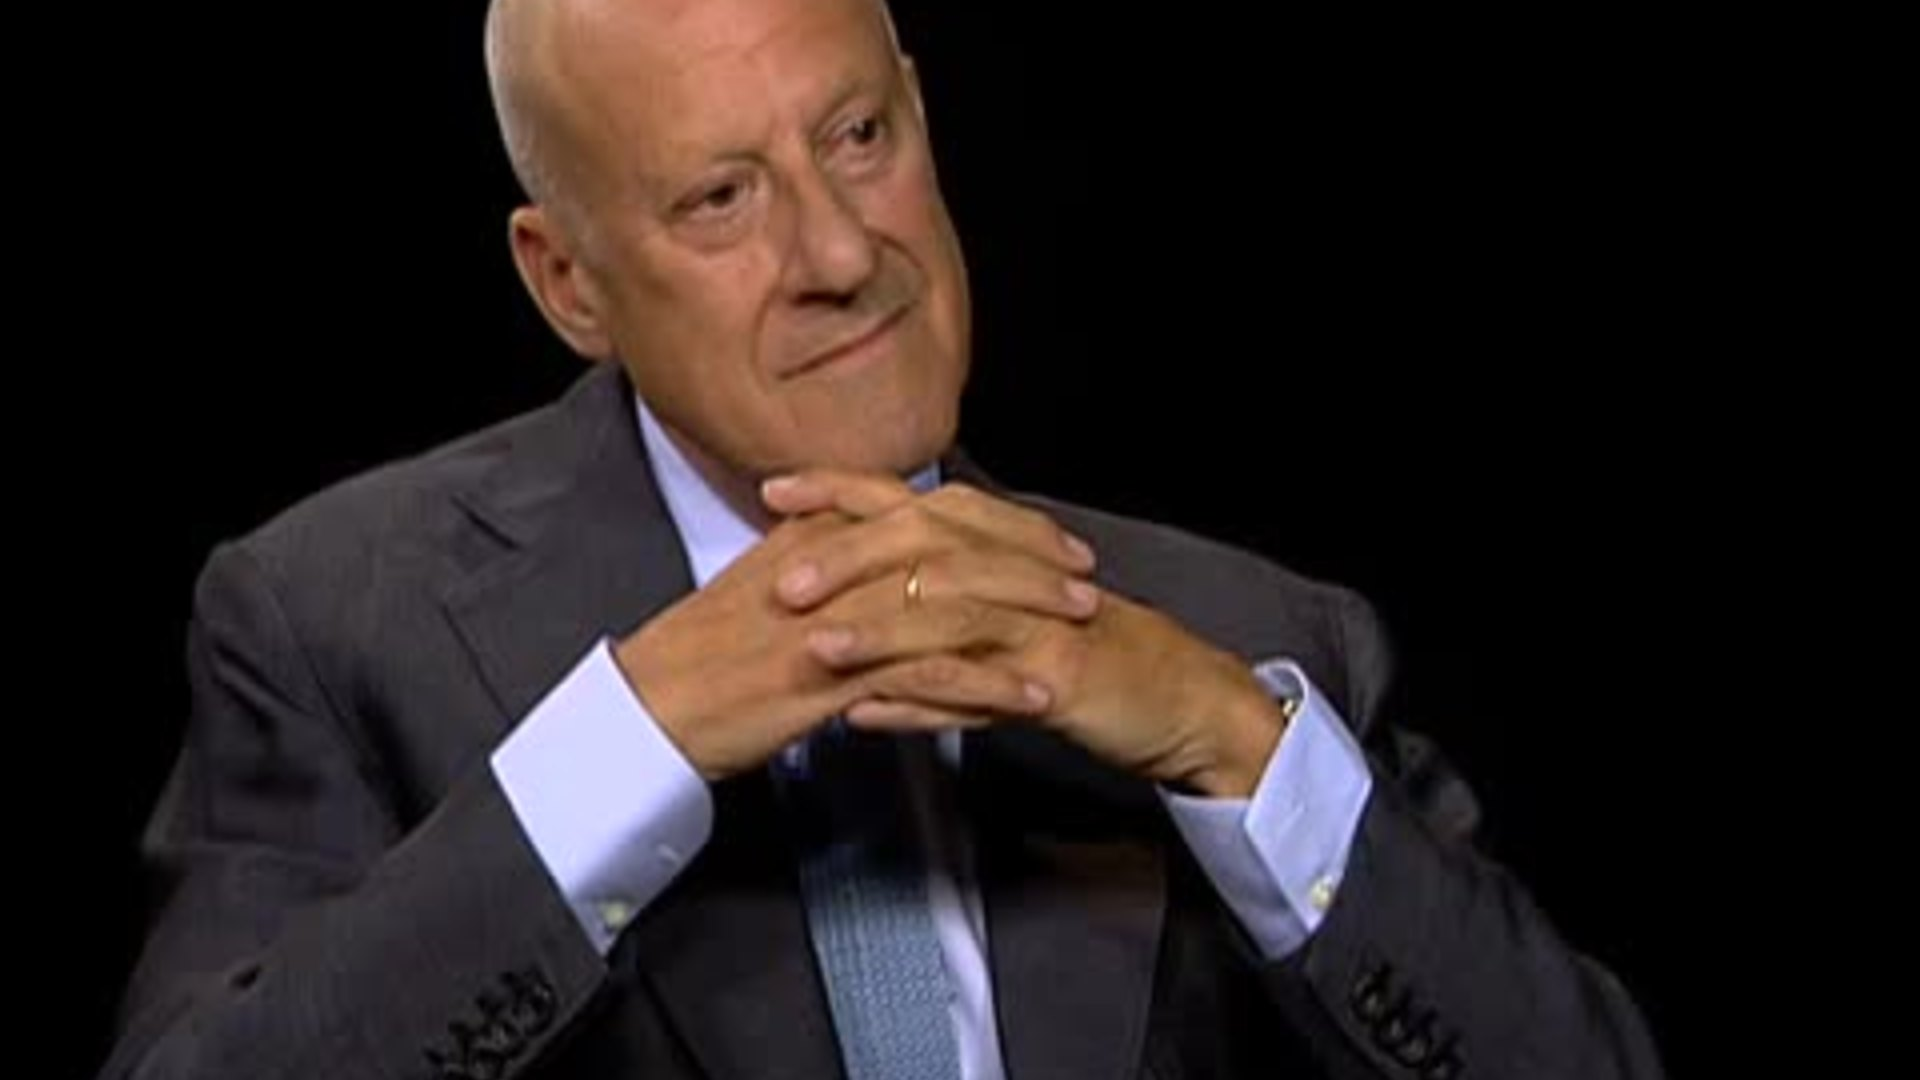 Norman Foster — Charlie Rose